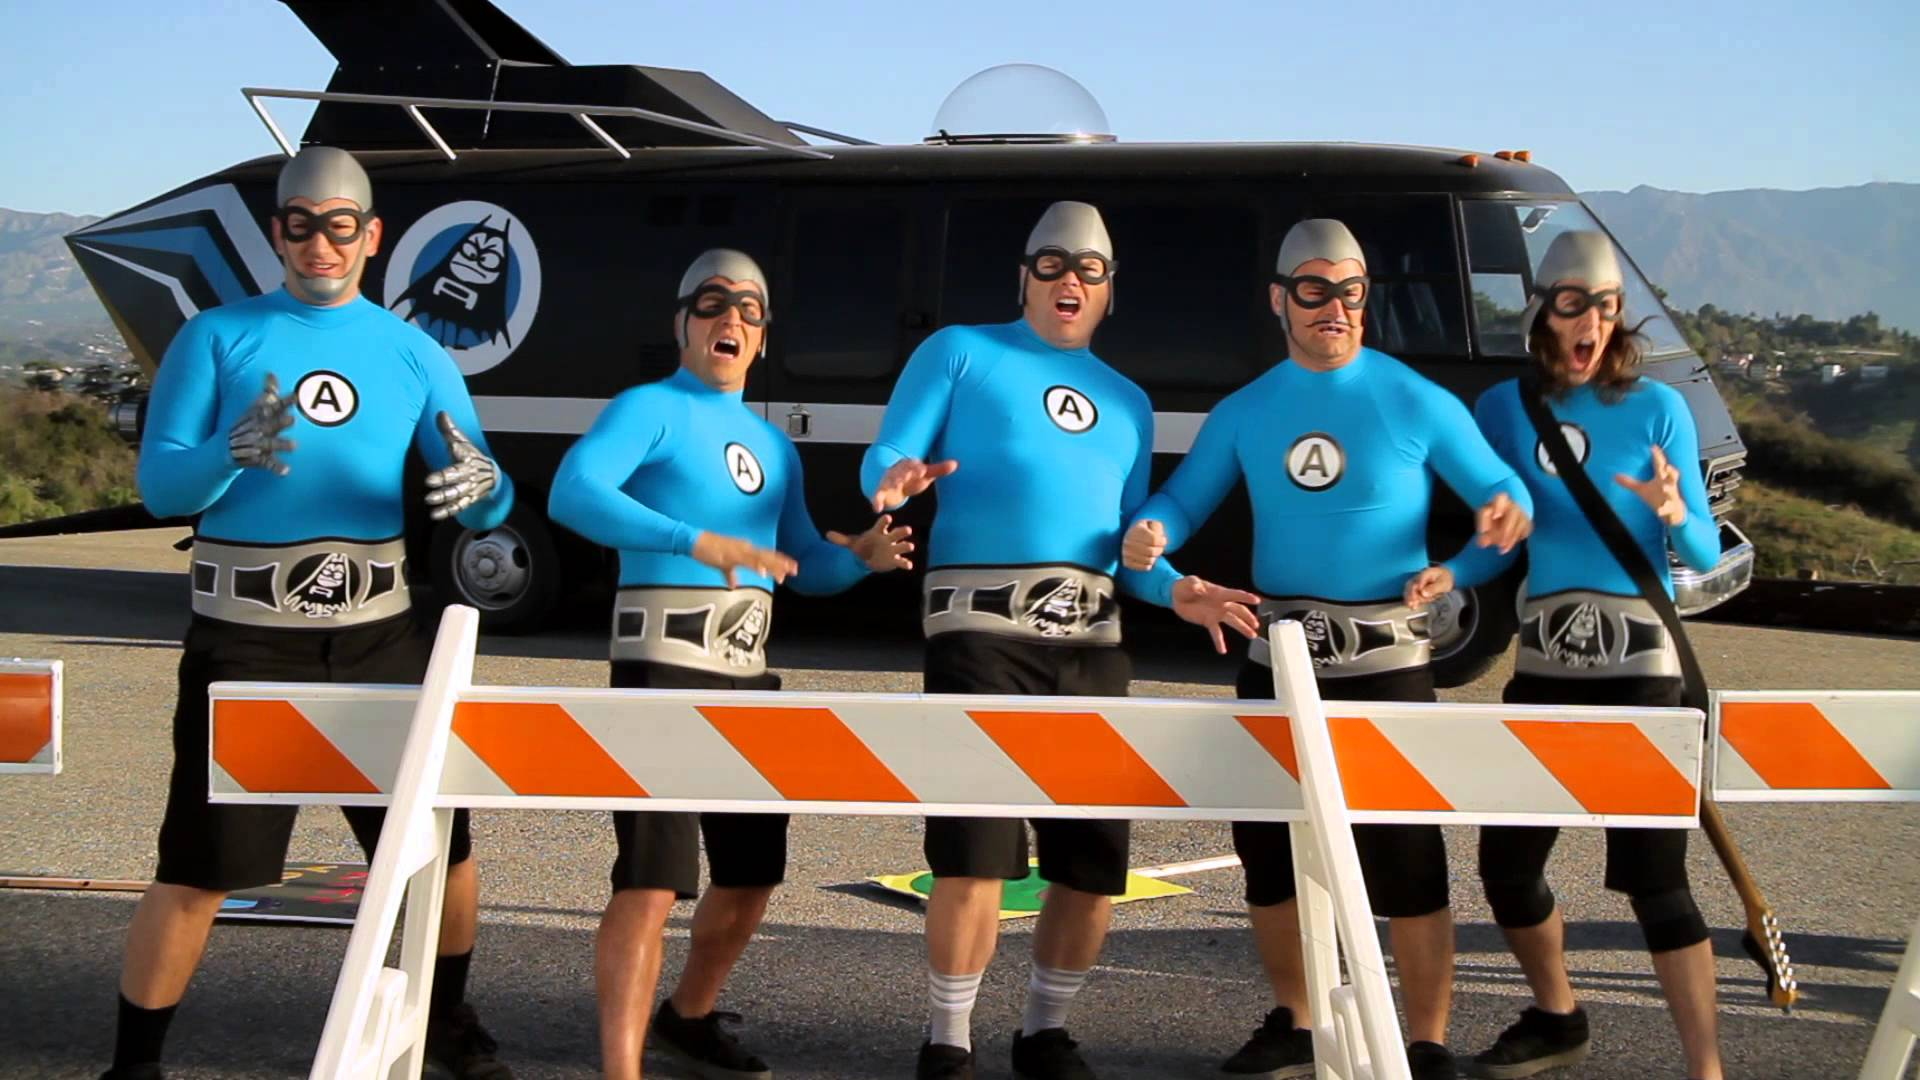 High Resolution Wallpaper | The Aquabats 1920x1080 px